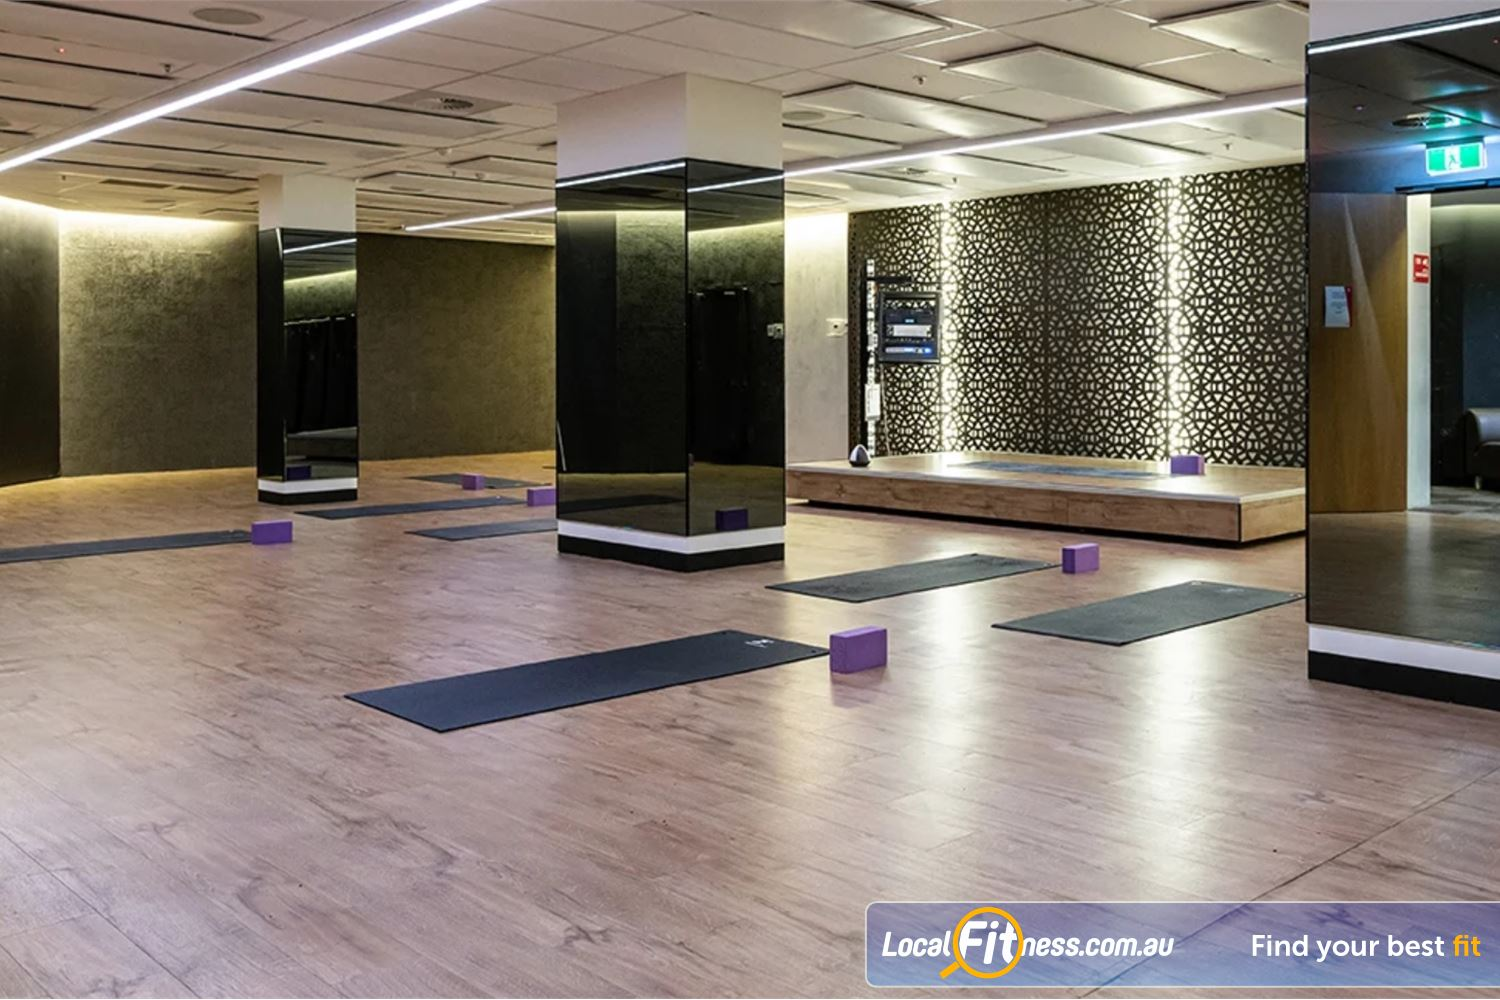 Fitness First Platinum George St. Sydney Our dedicated Sydney Yoga studio will help you rejuvenate and refocus your life.